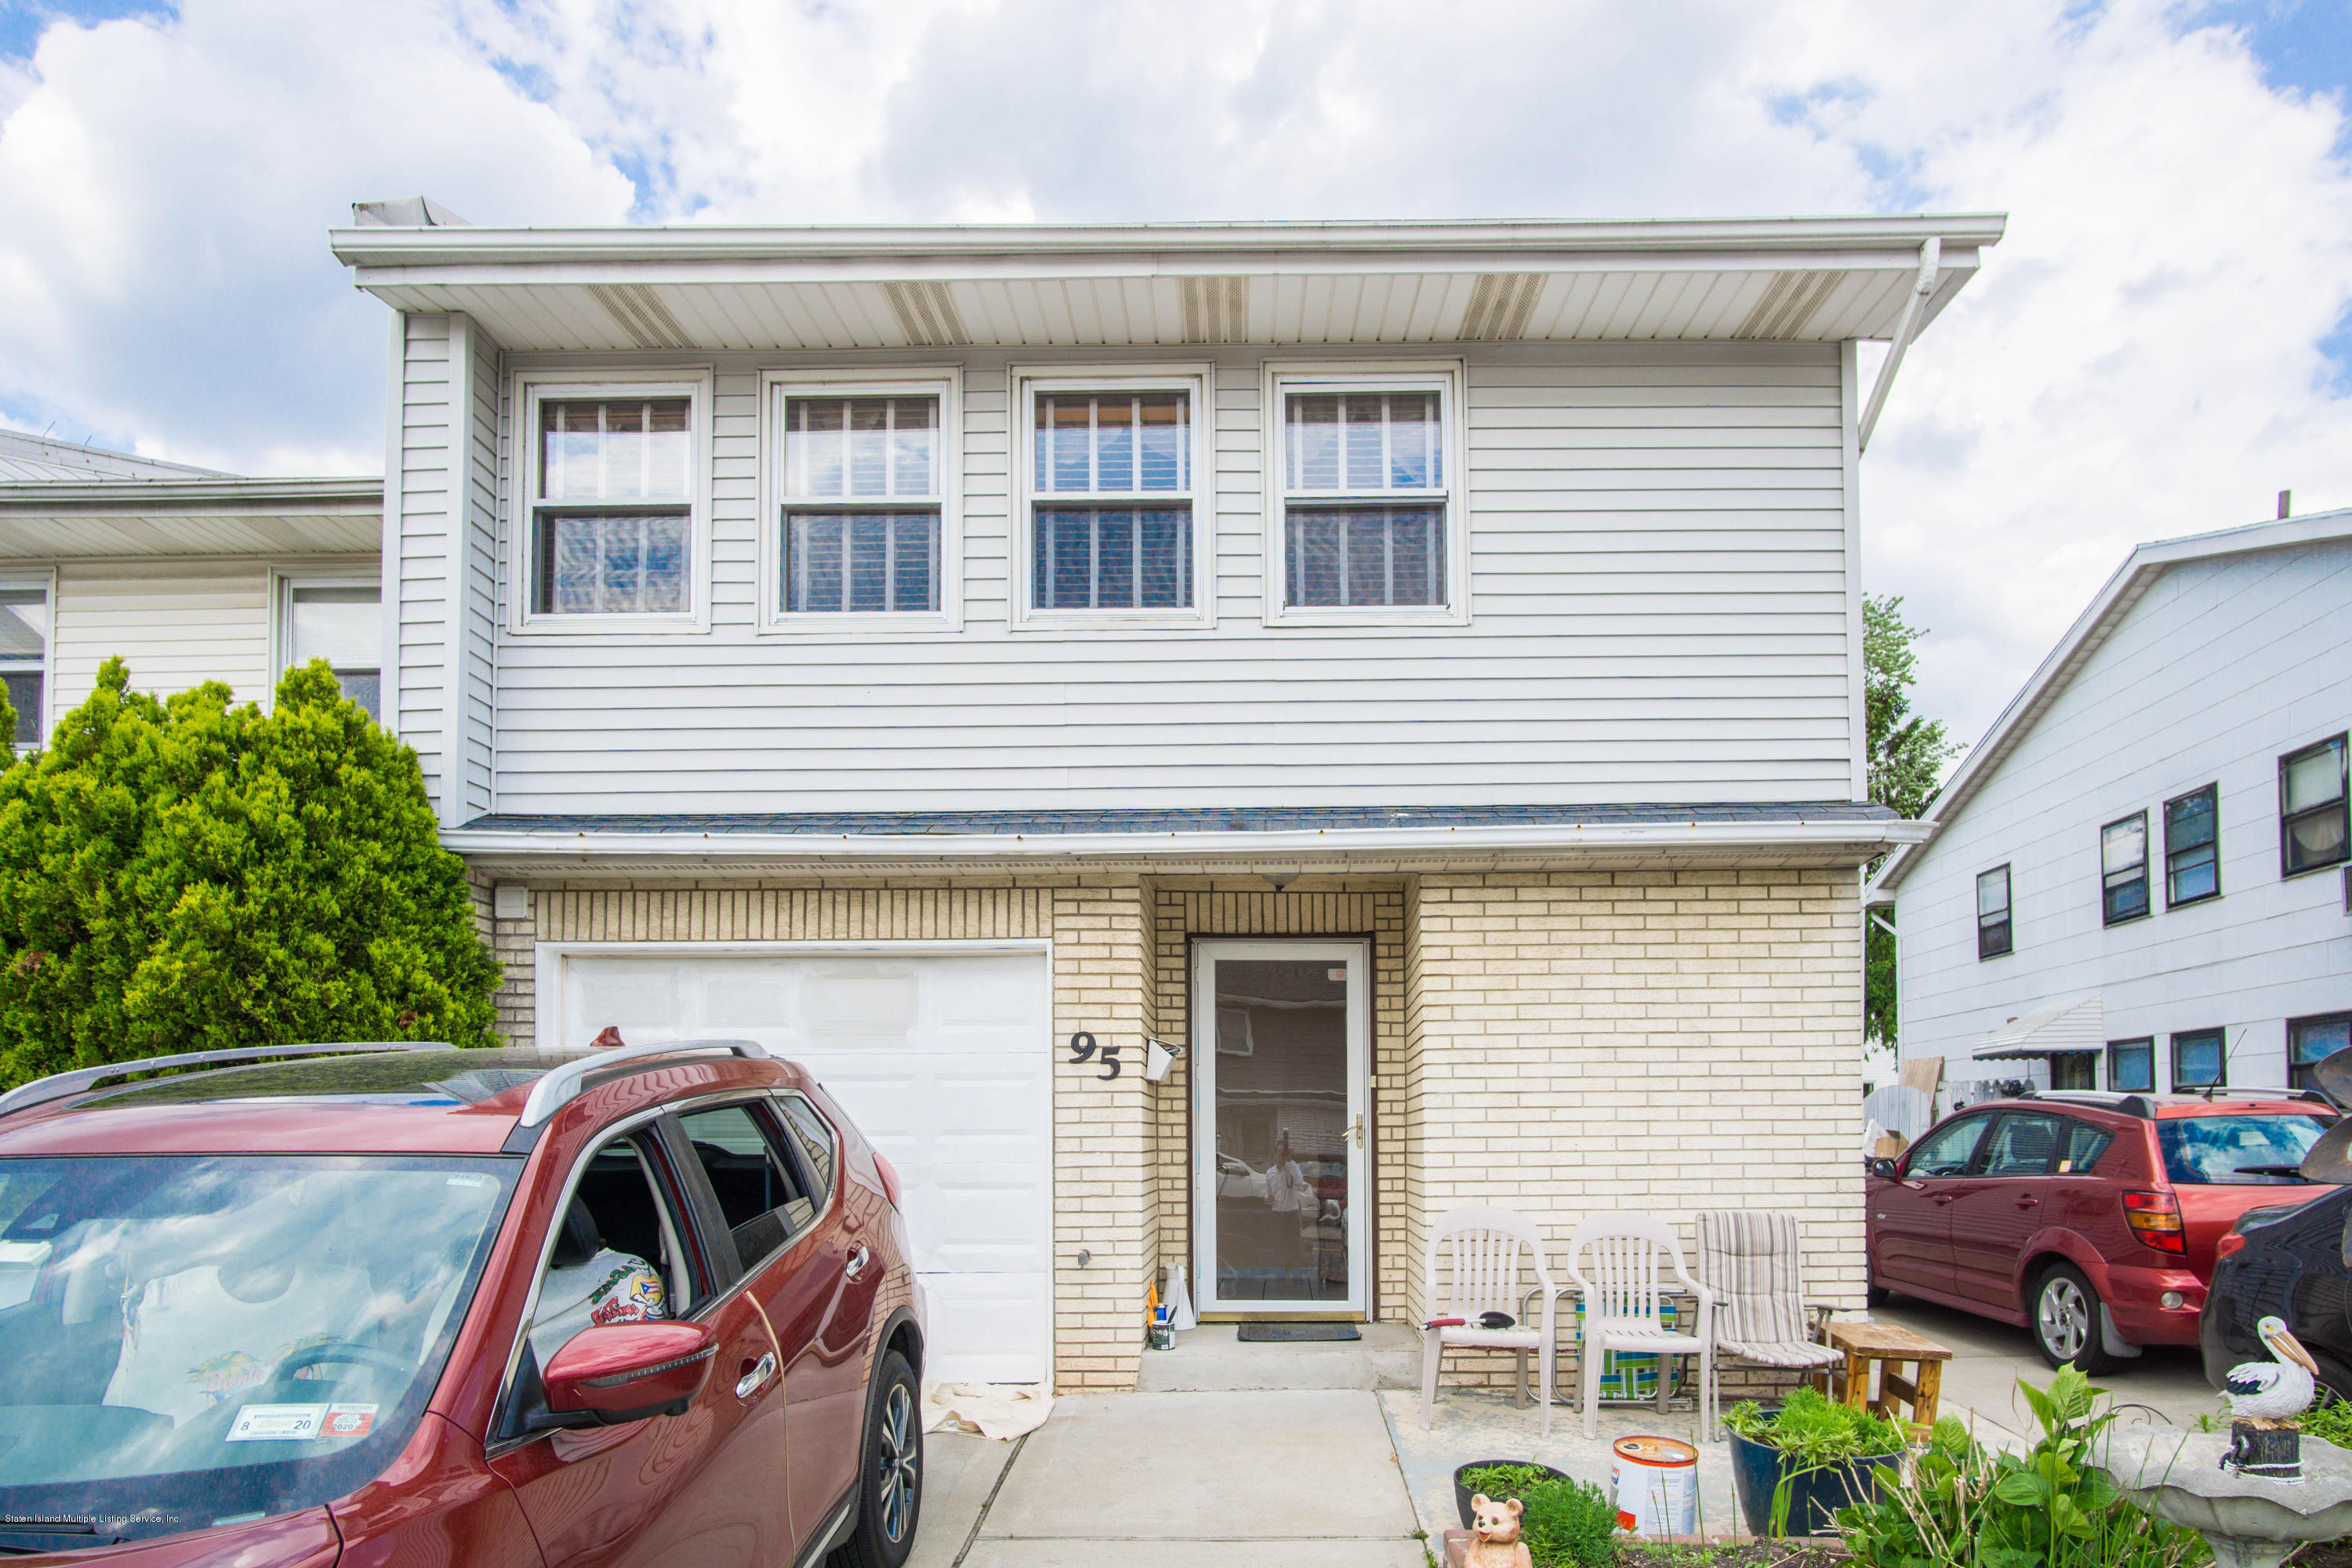 Two Family - Semi-Attached 95 Regis Drive  Staten Island, NY 10314, MLS-1129148-2